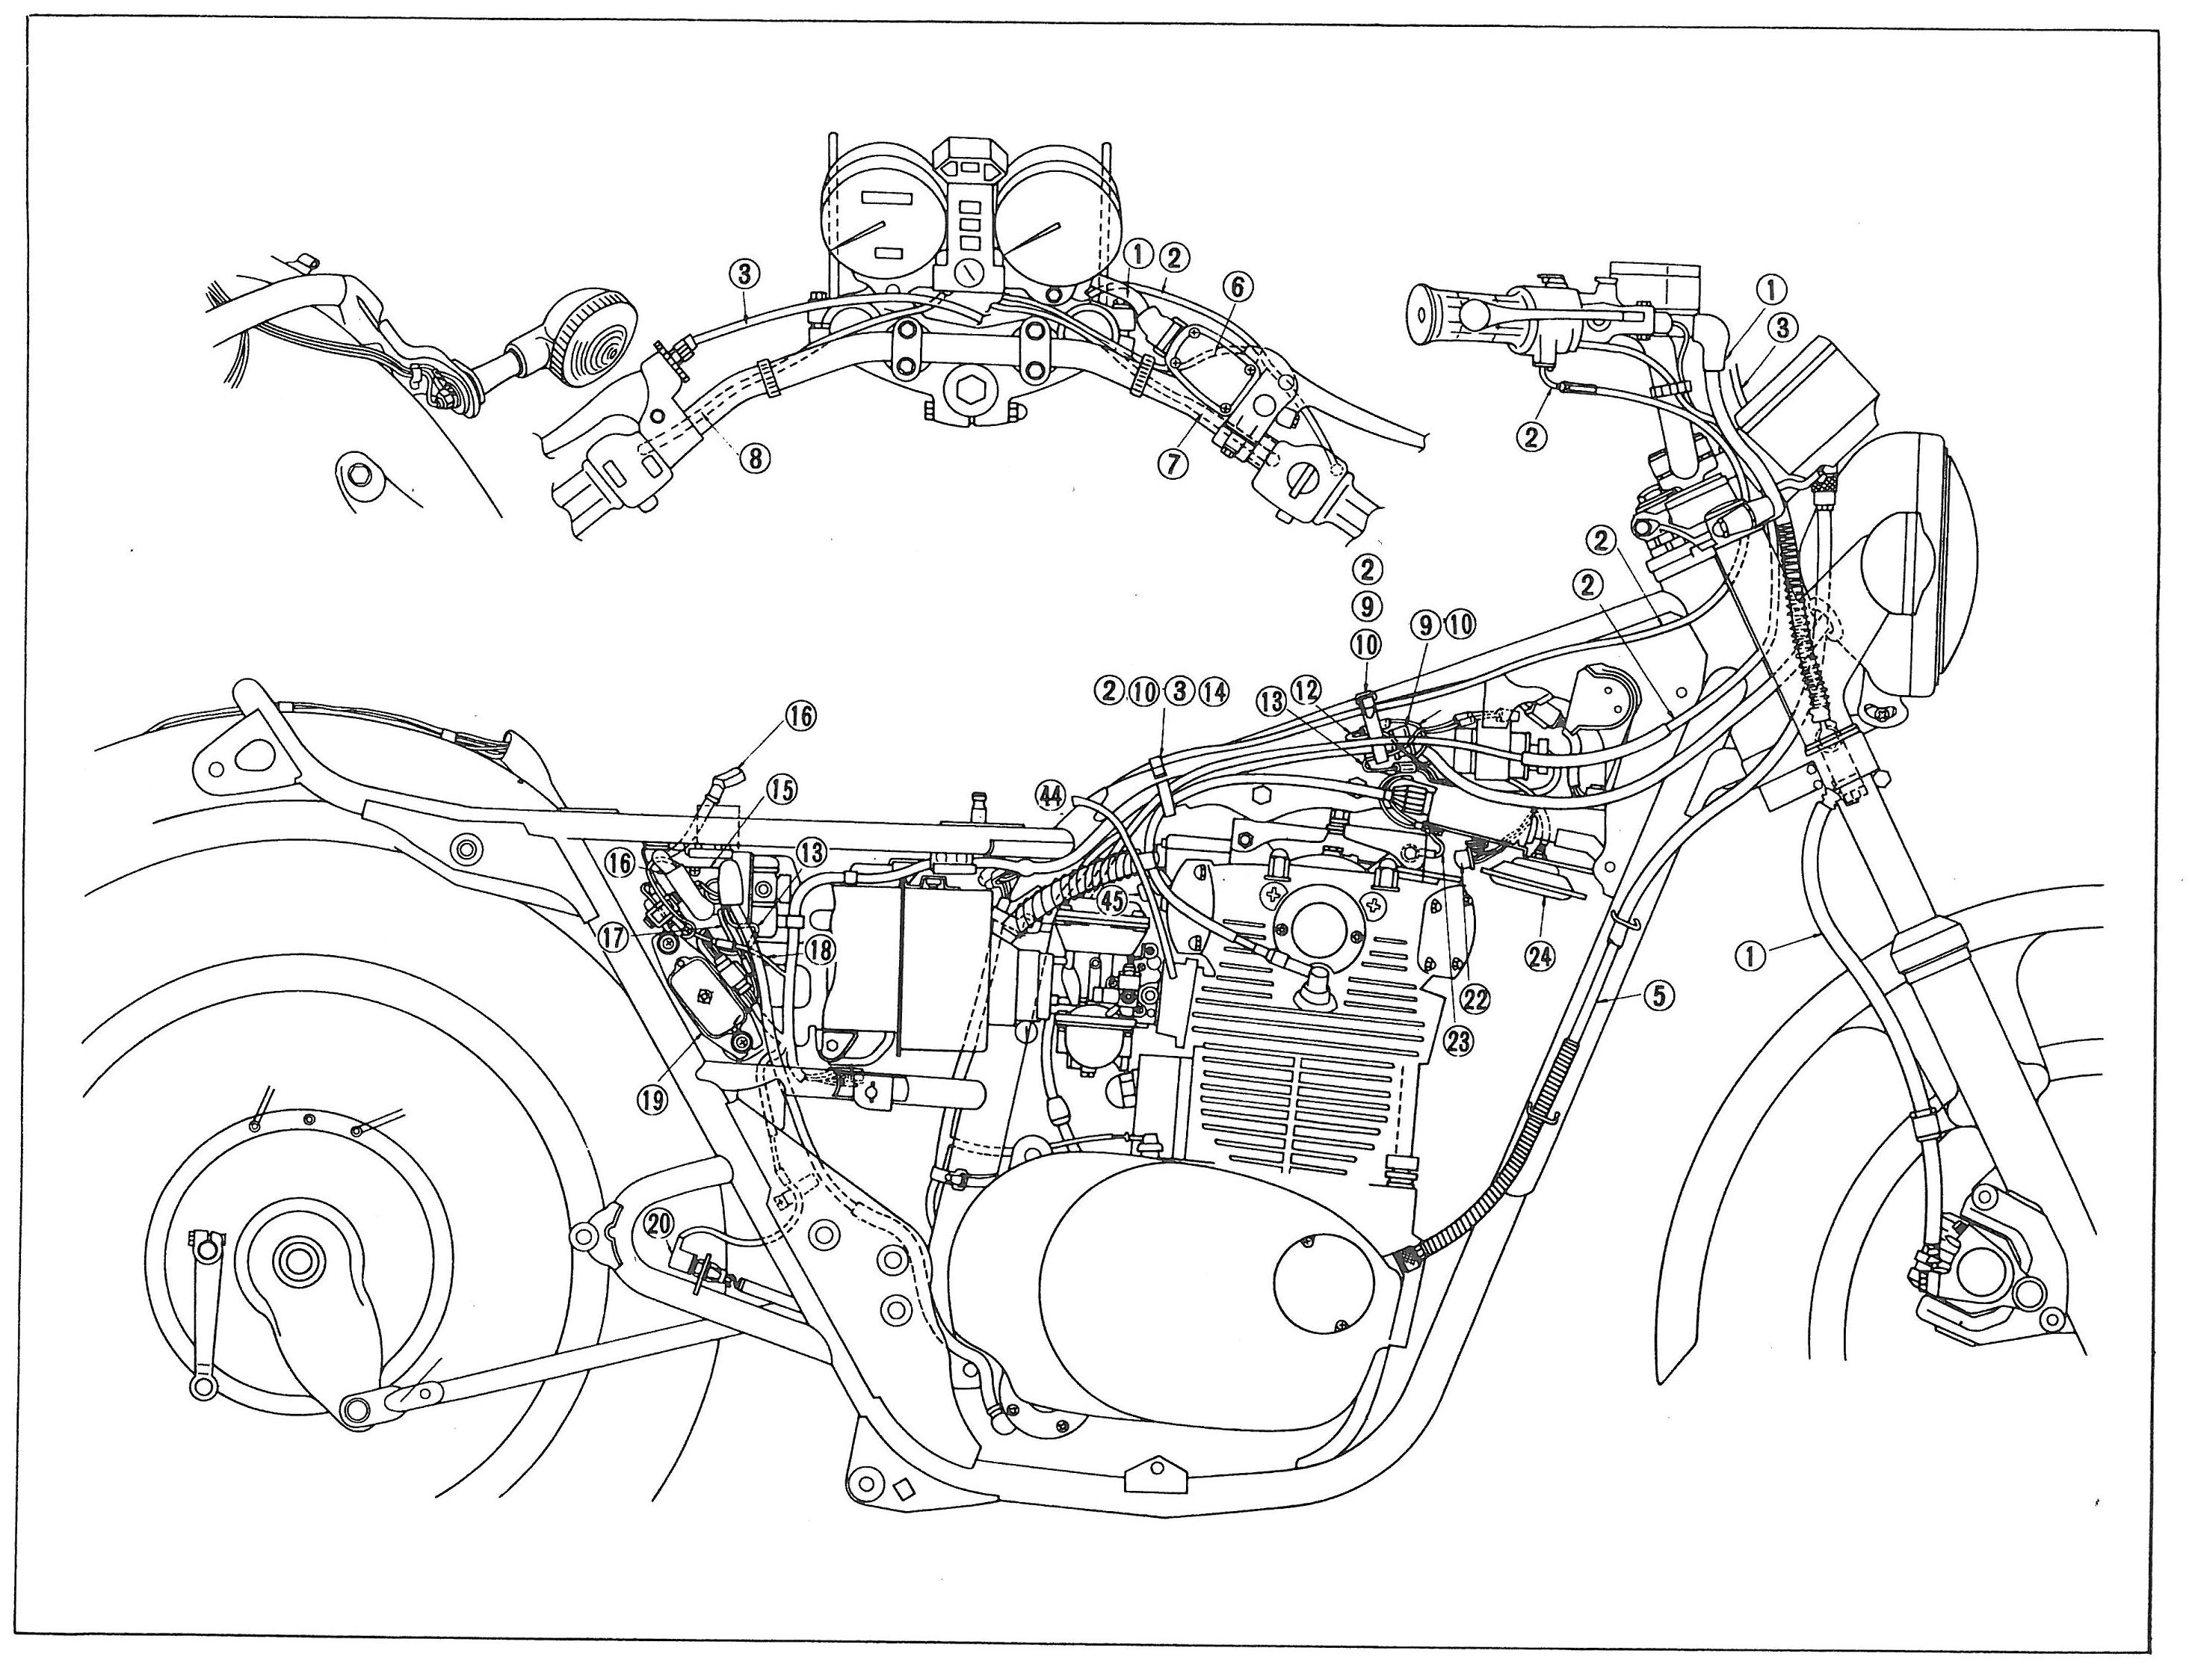 FC0E9 1981 Yamaha Xs400 Wiring Diagram | Wiring ResourcesWiring Resources